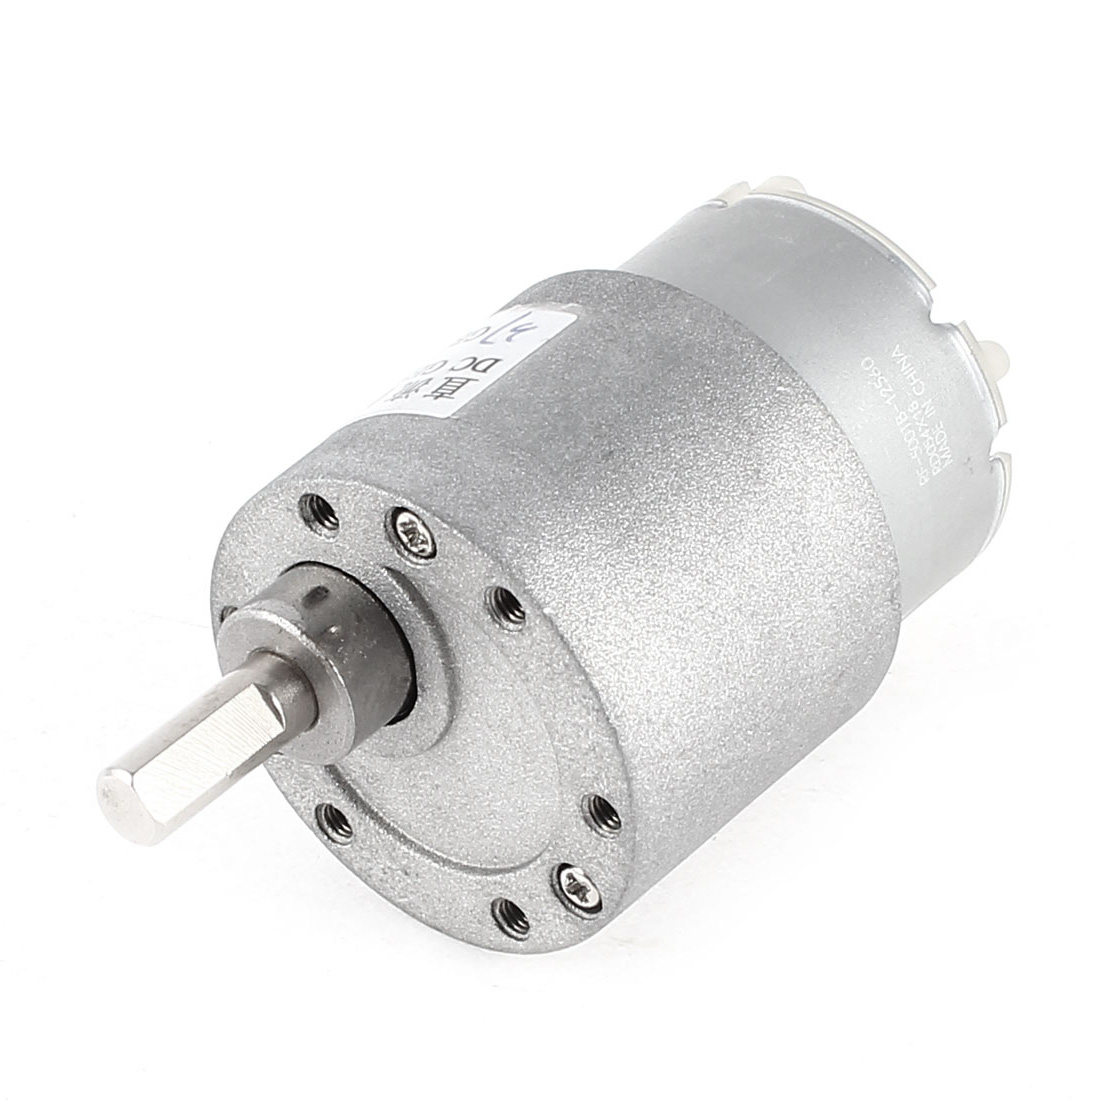 5RPM DC 6V High Torque Gear Box Electric Speed Reduce Motor Silver Tone